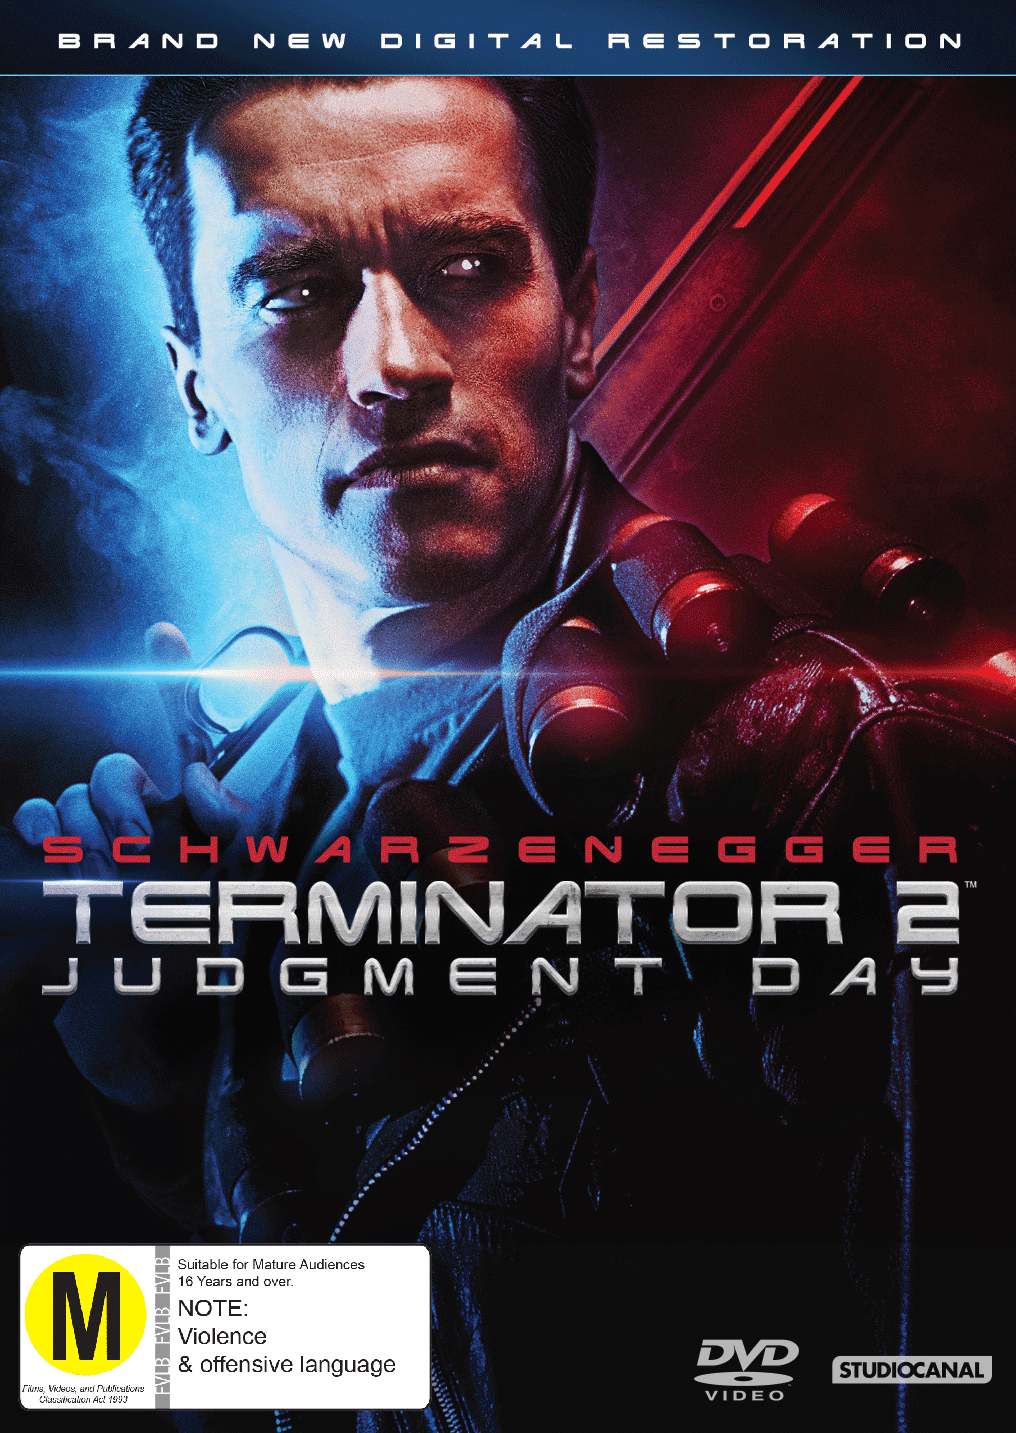 TERMINATOR JUDGEMENT DAY D DVD D